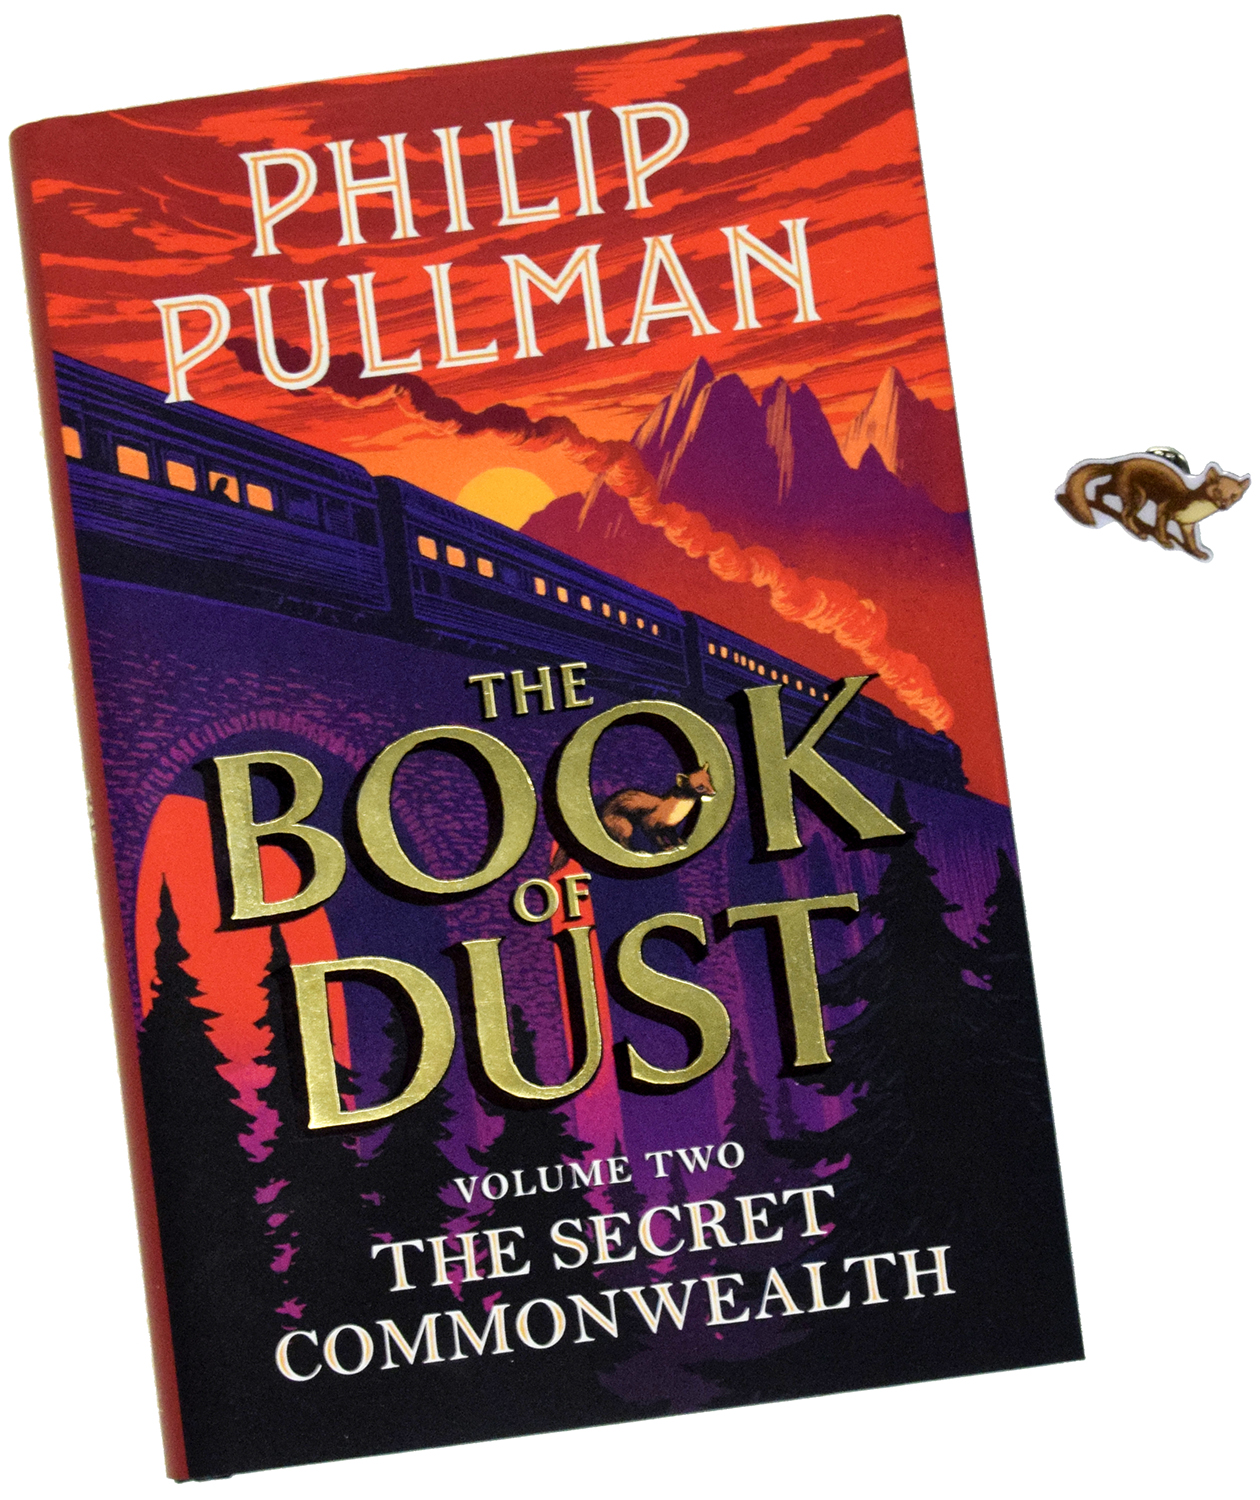 The Secret Commonwealth: The Book of Dust Volume Two - with exclusive pin